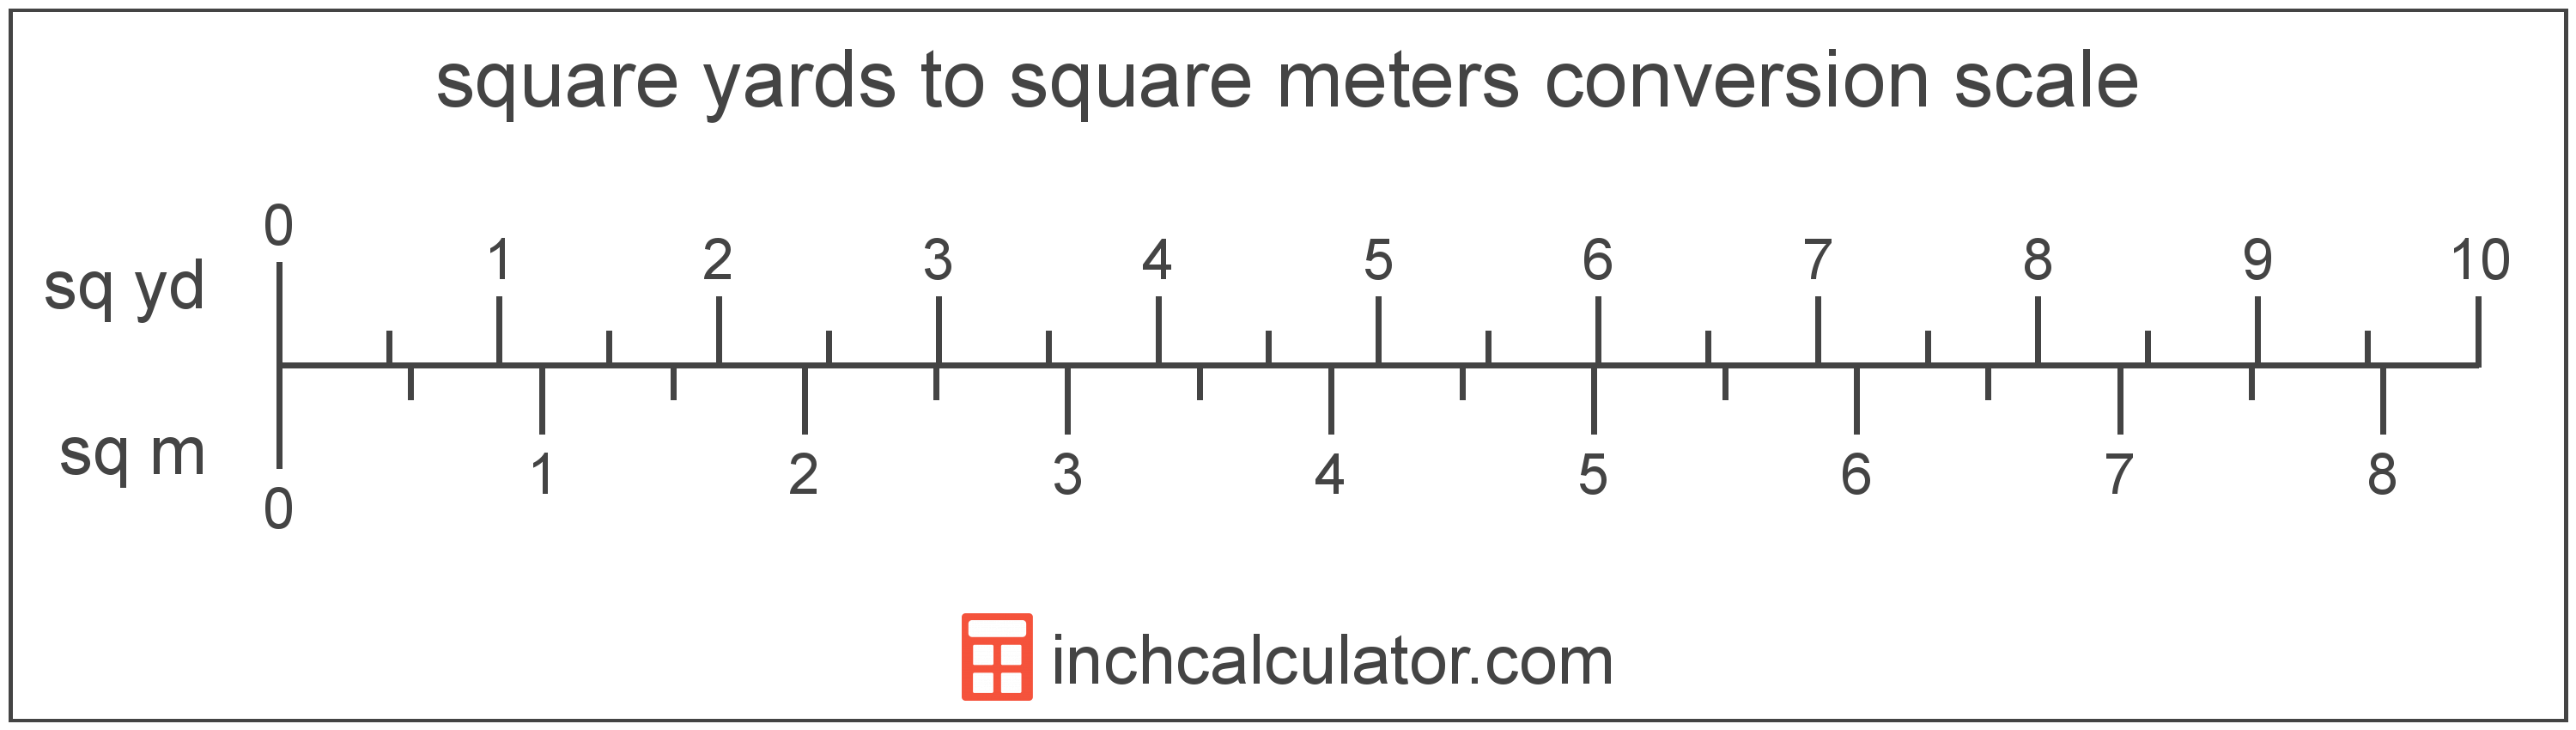 conversion scale showing square meters and equivalent square yards area values